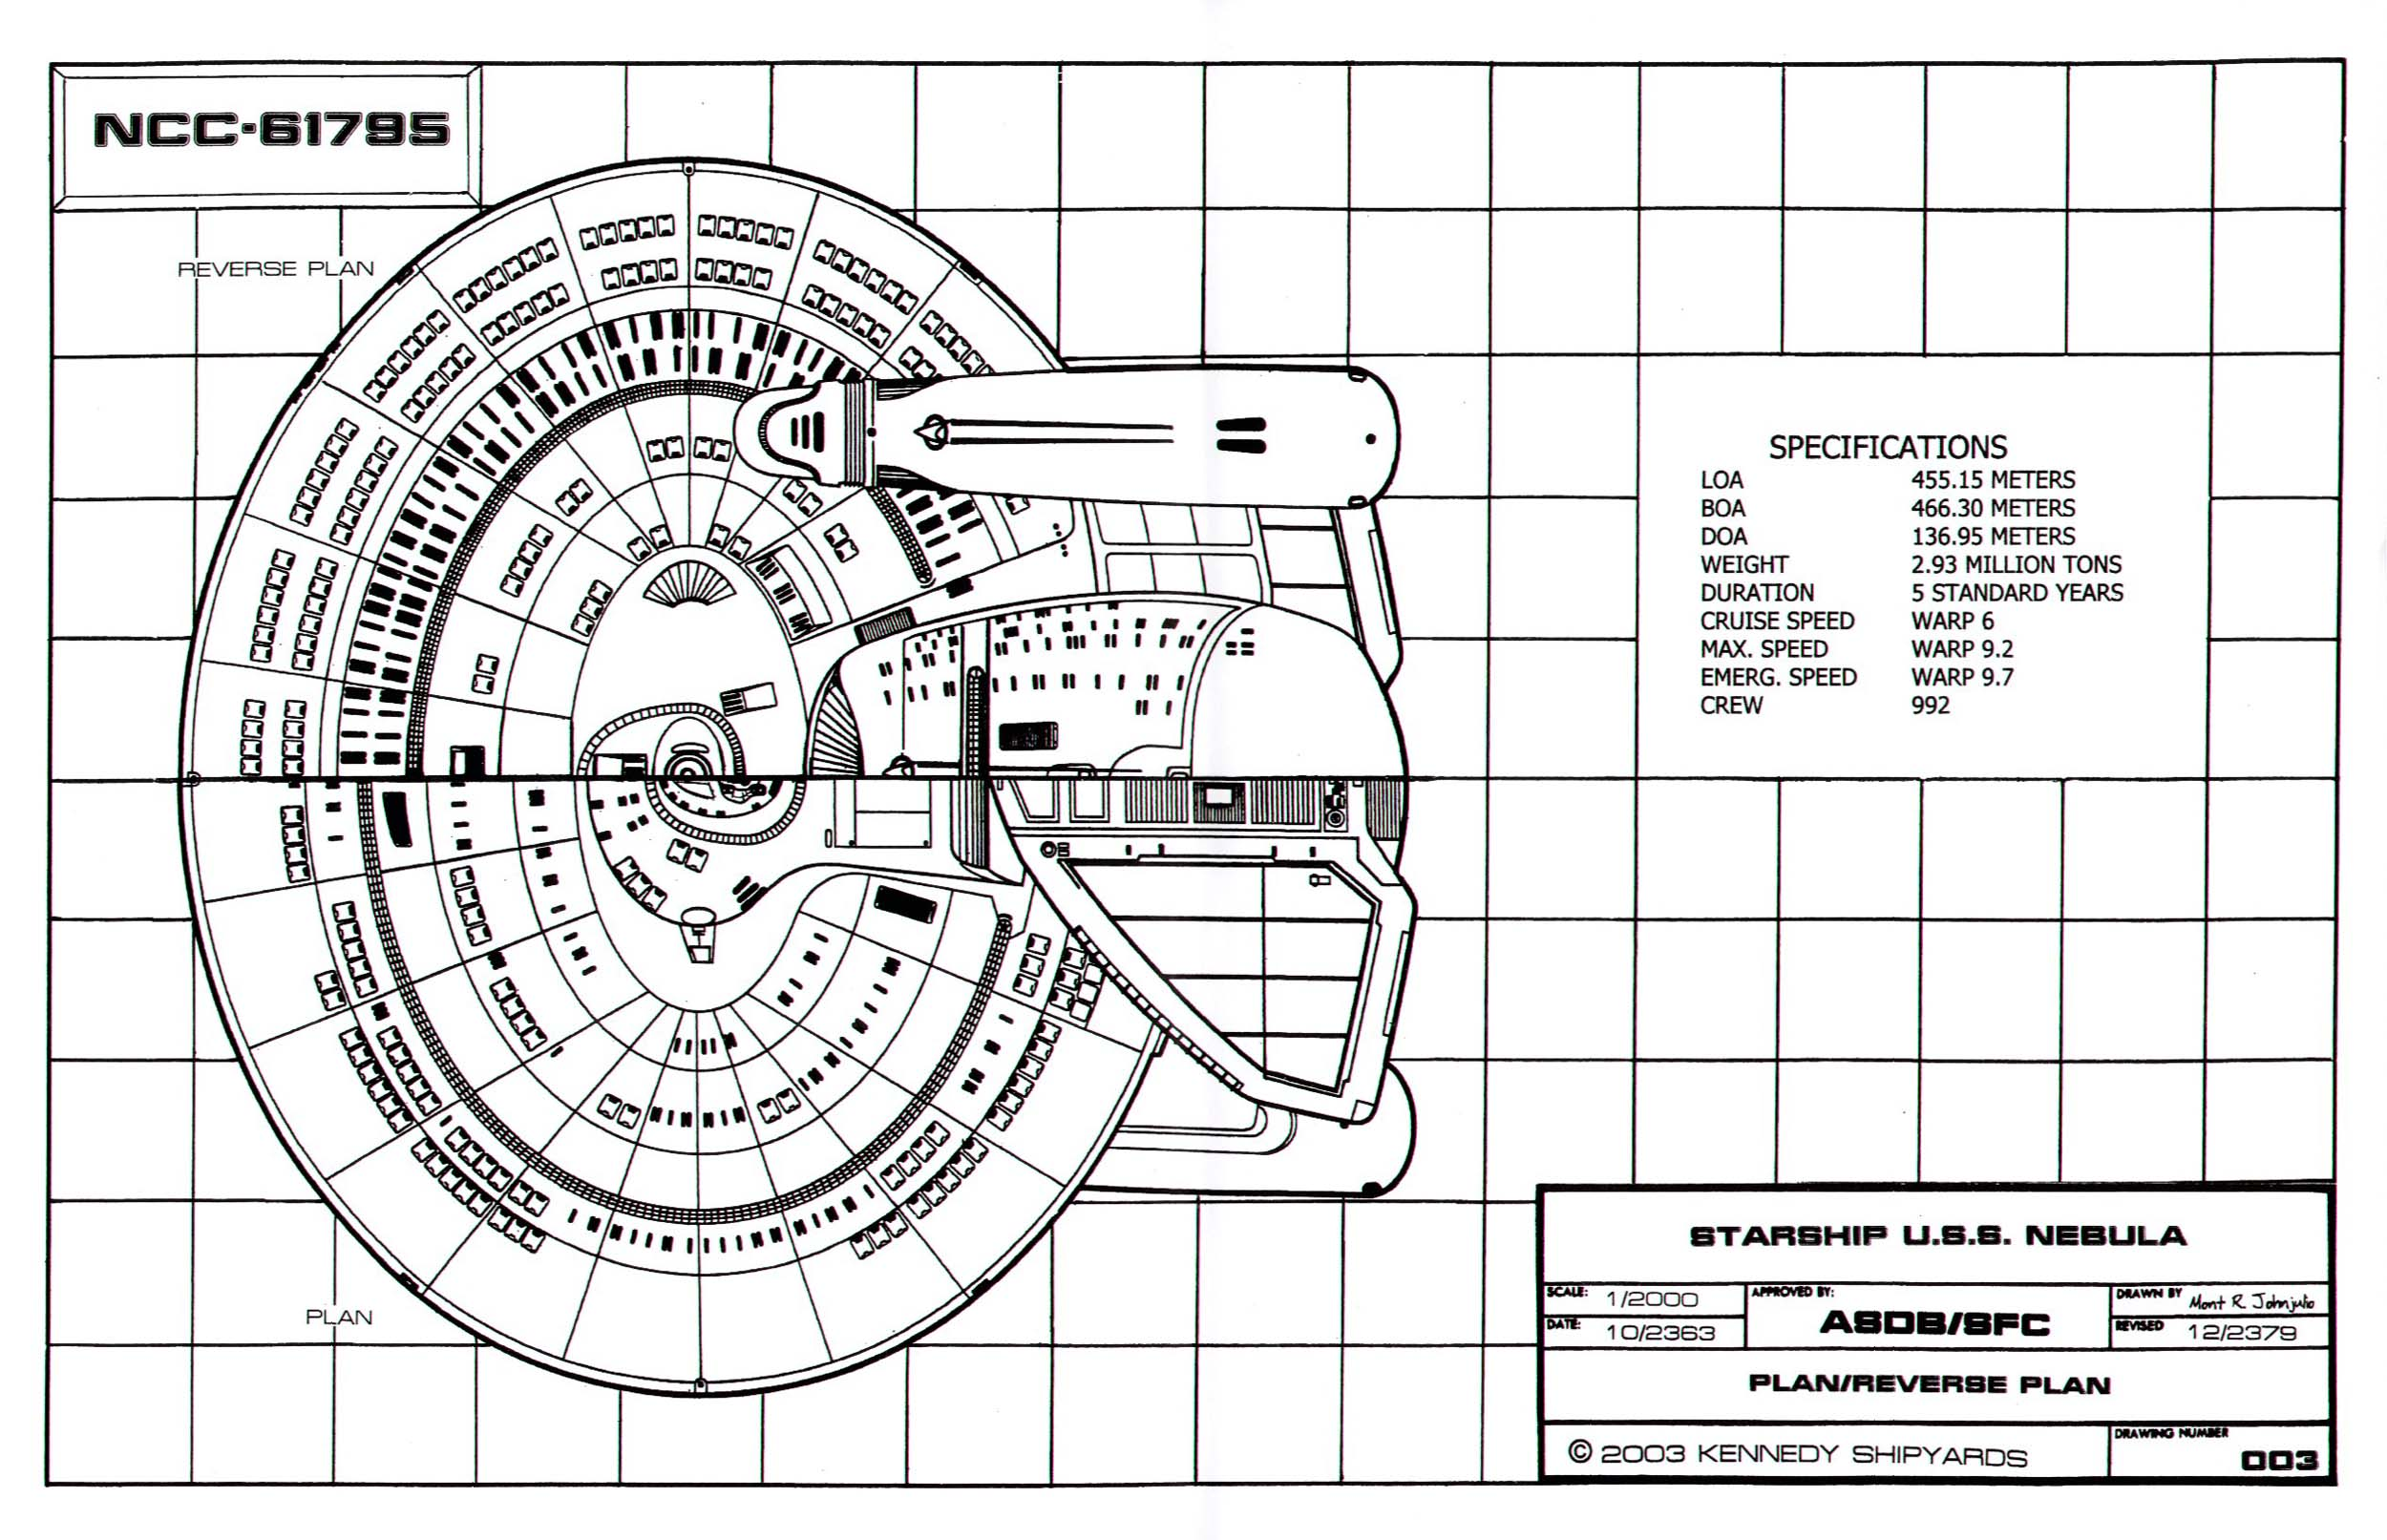 Star Trek Blueprints: Nebula Class Starship: U.S.S. Nebula